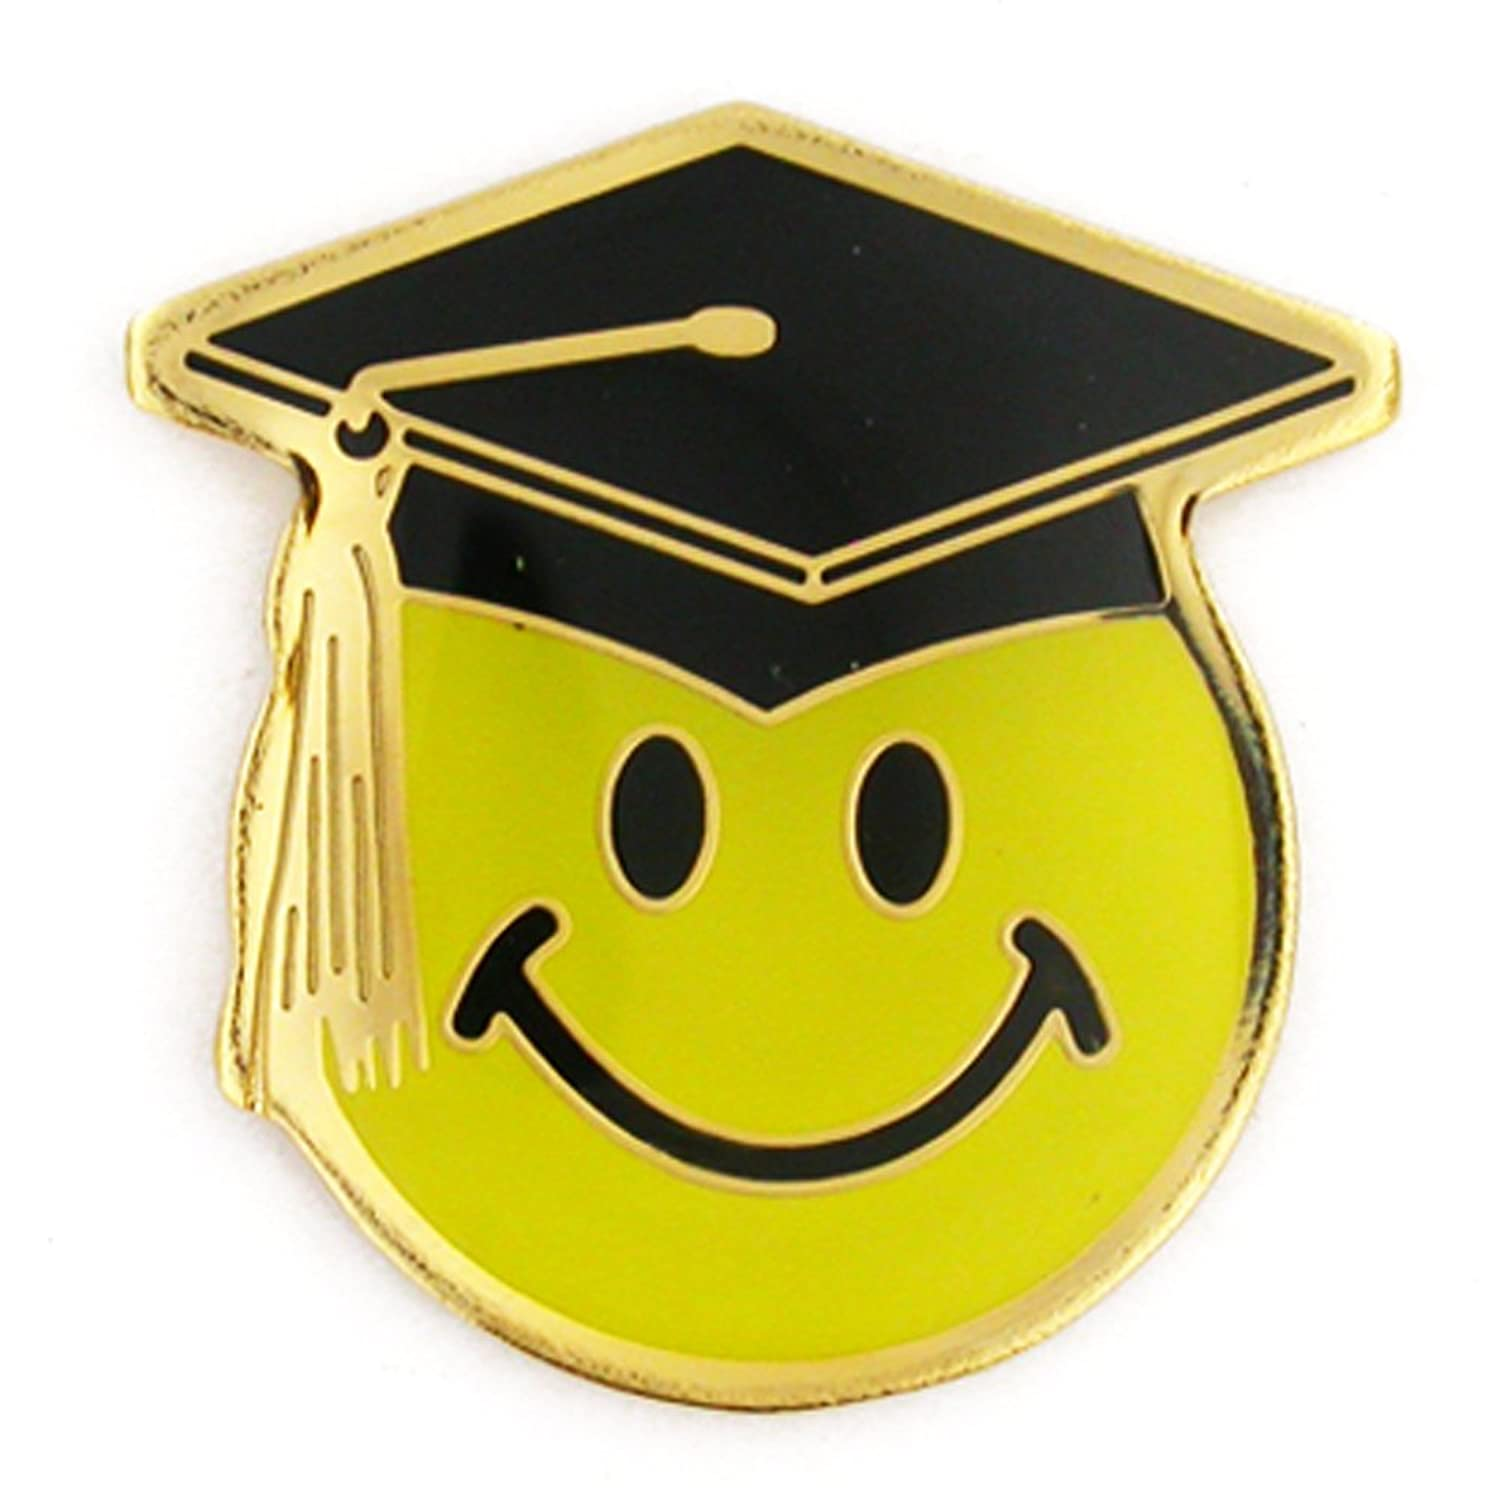 hot sell PinMart's Smiley Face with Graduation Cap School Lapel Pin free shipping